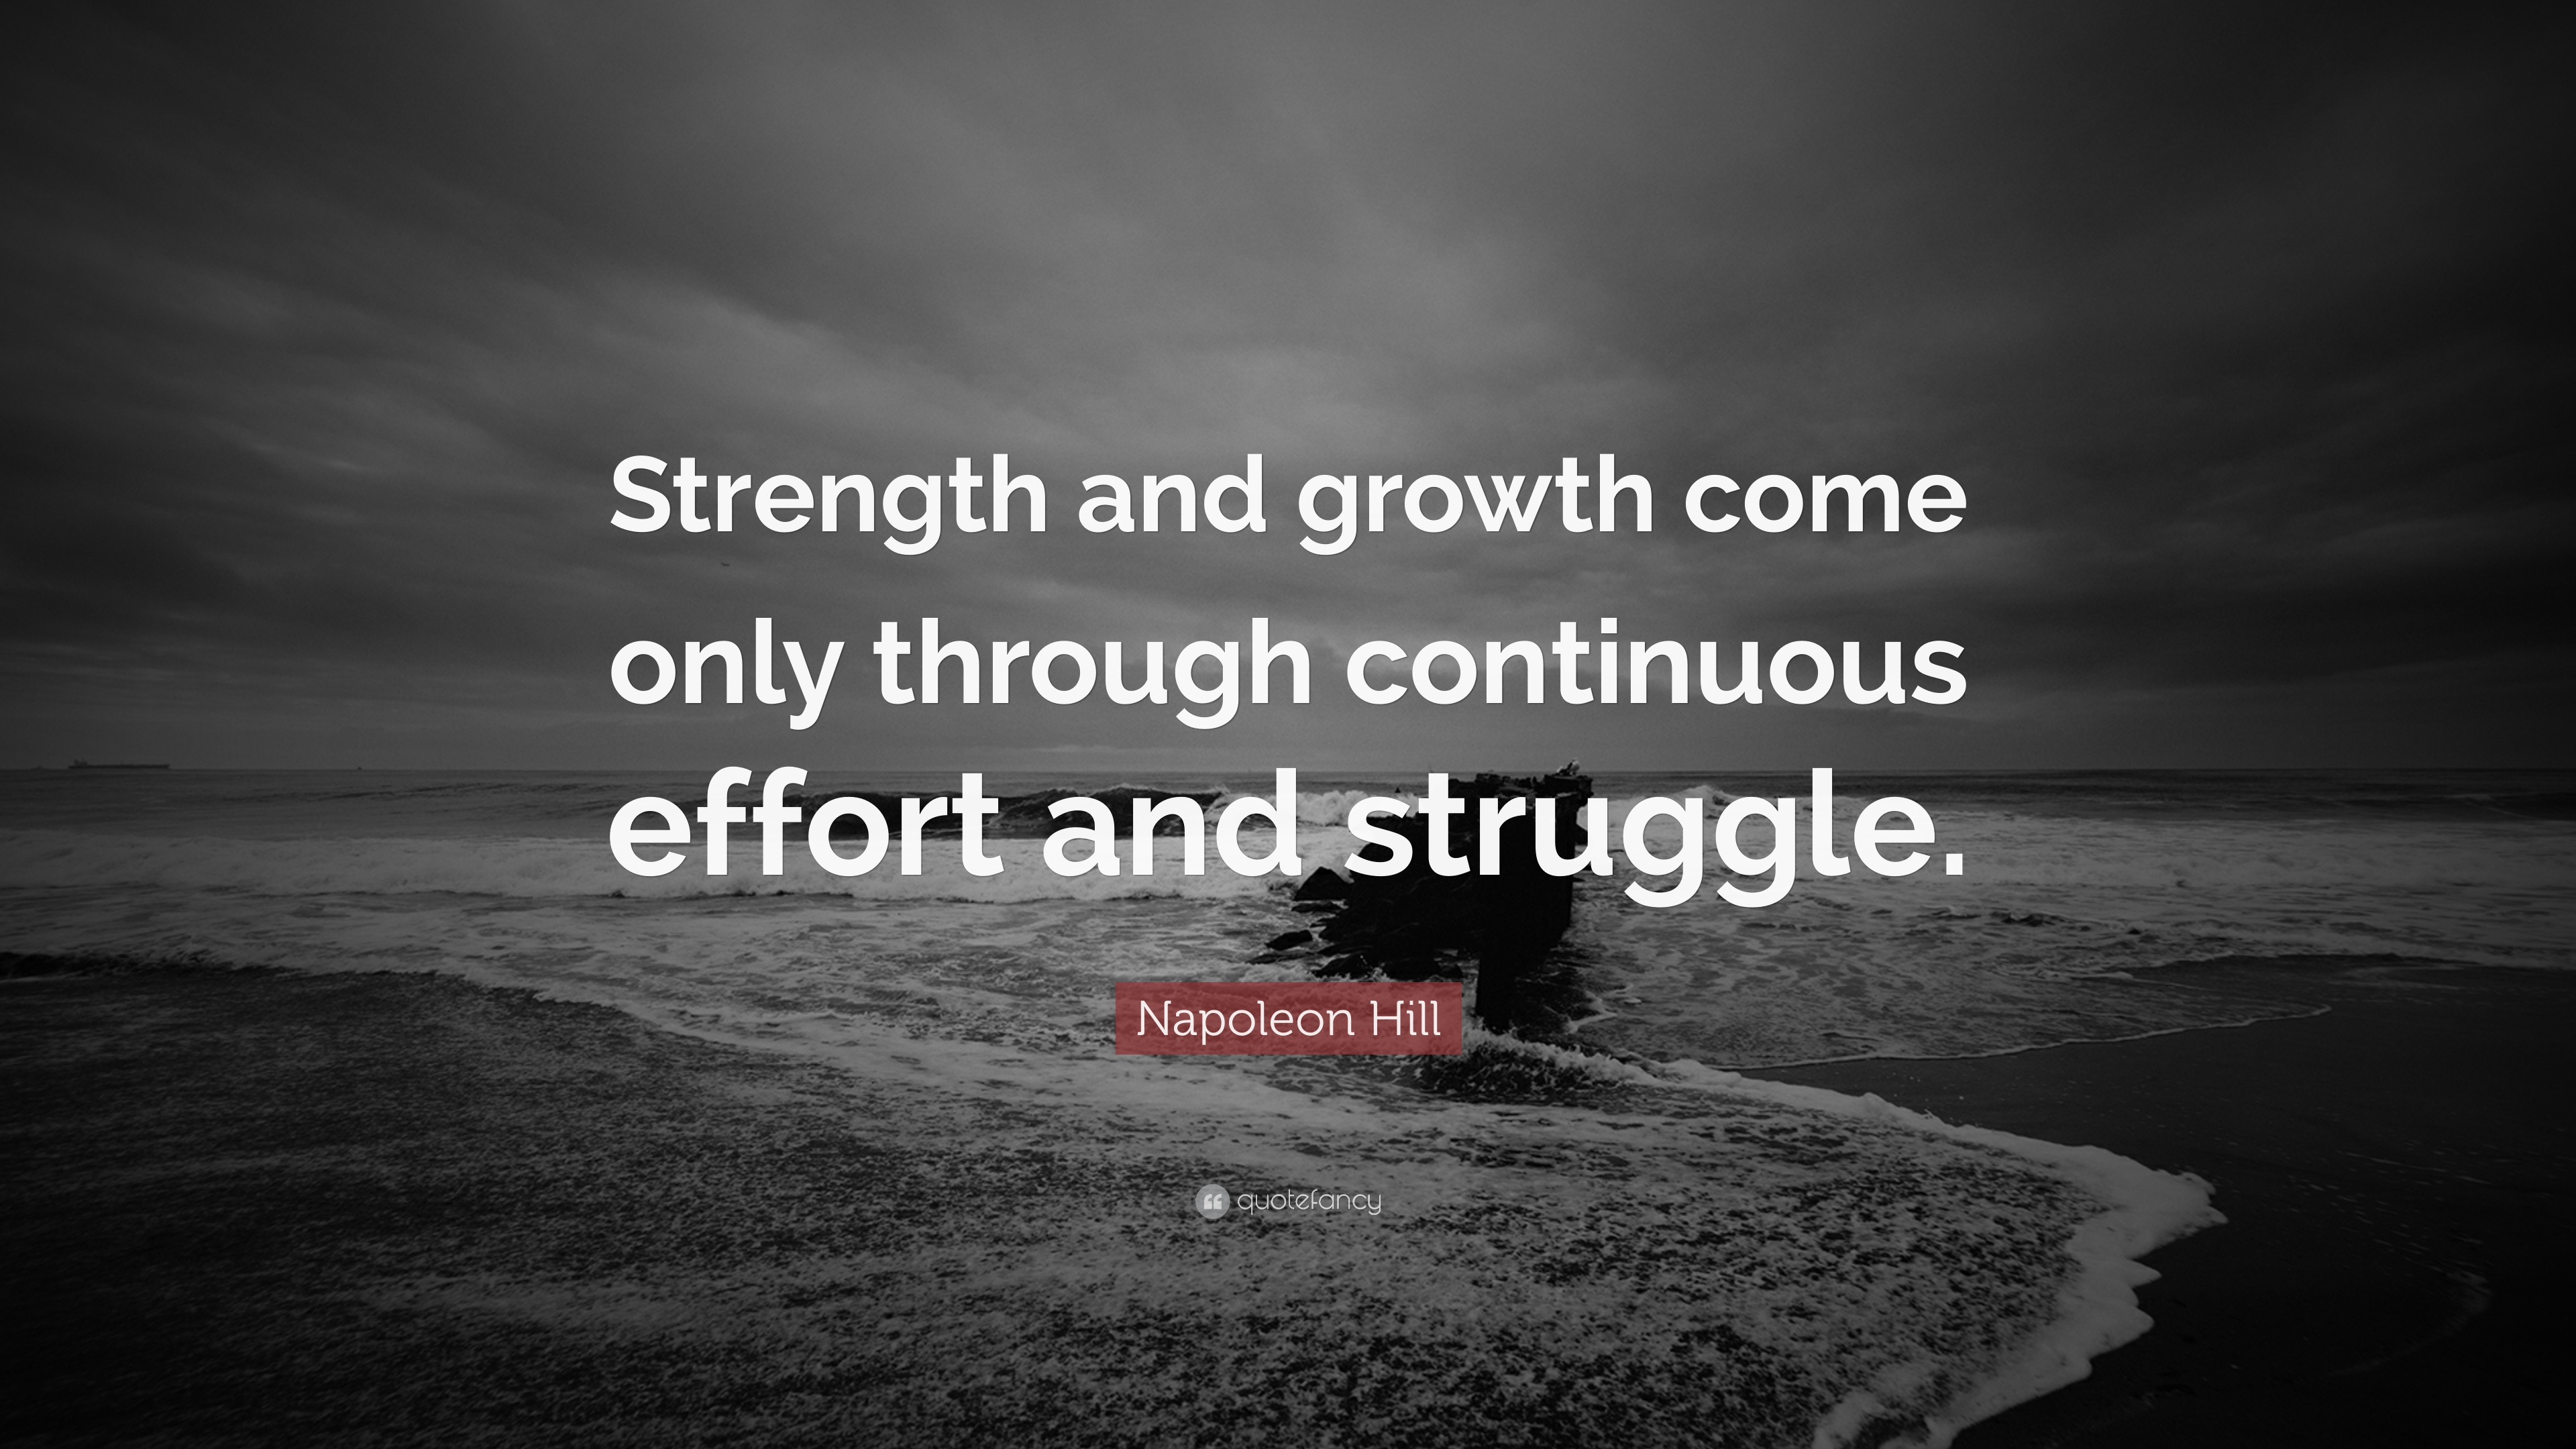 Quotes About Strength Quotes About Strength 23 Wallpapers  Quotefancy